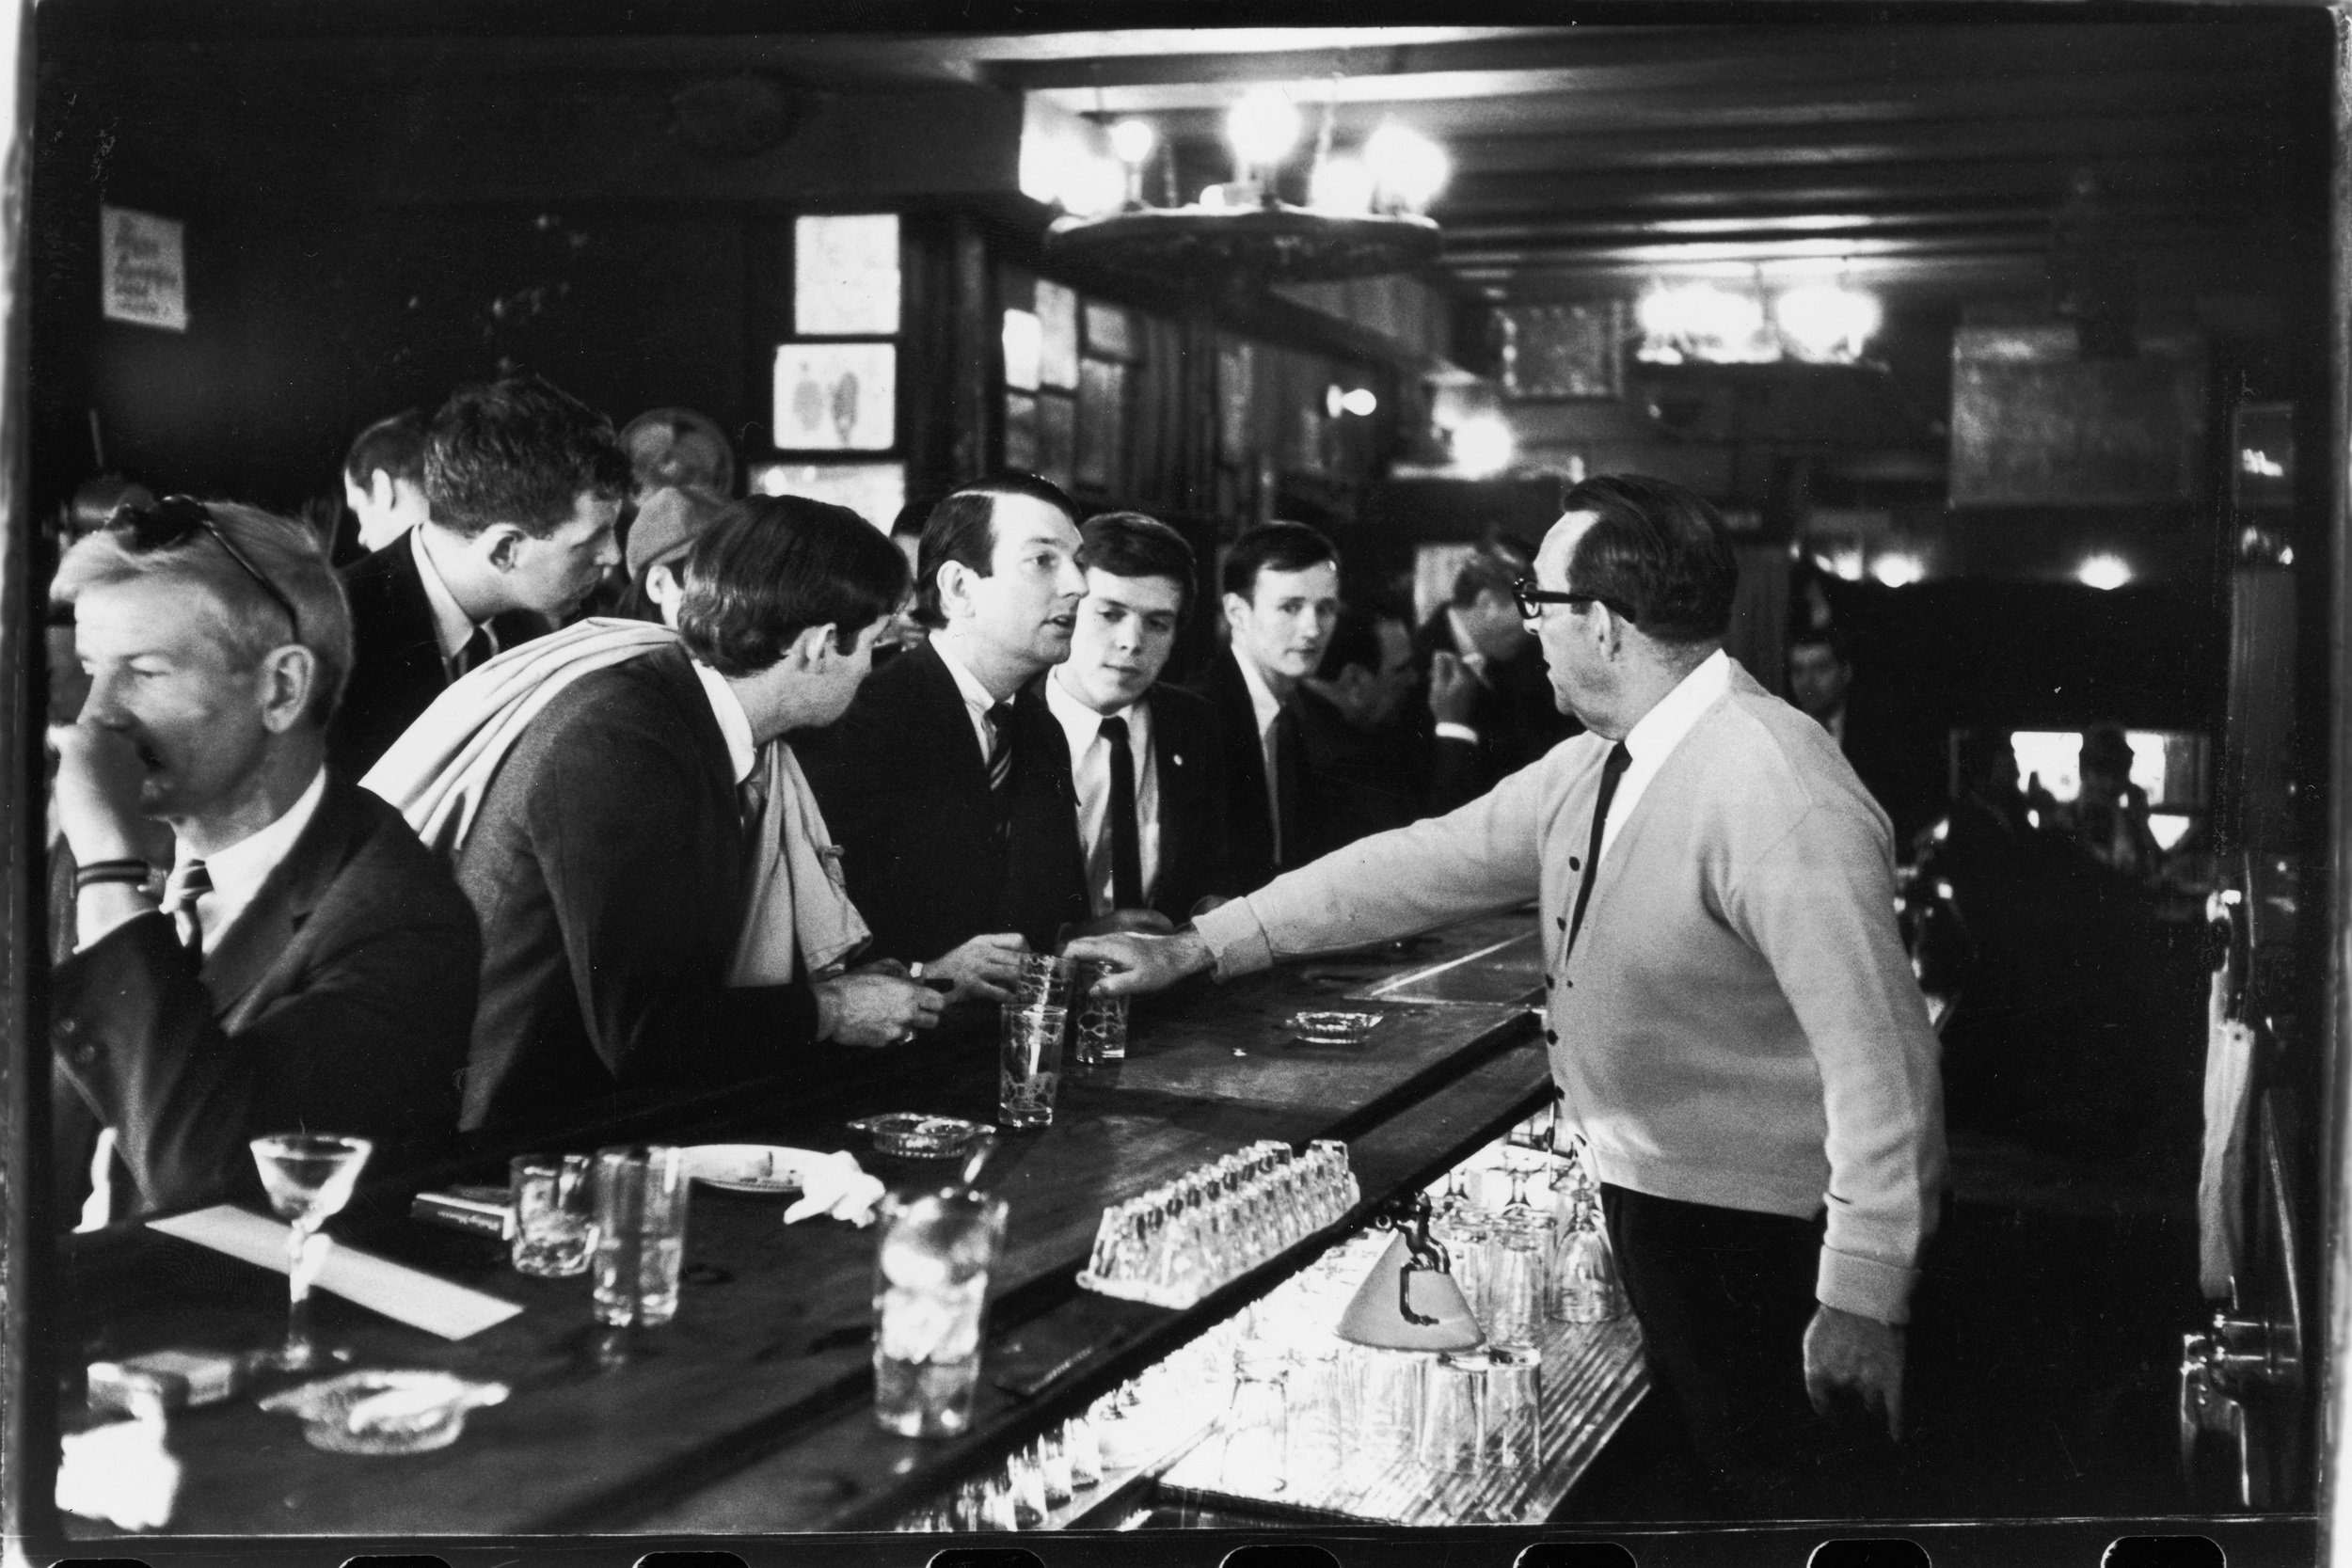 After pouring their drinks, a bartender at Julius's Bar, 159 West 10th St., refuses to serve John Timmins, Dick Leitsch, Craig Rodwell and Randy Wicker, members of the Mattachine Society, an early American gay rights group, who were protesting New York liquor laws that punished bars for serving gay customers, April 21, 1966. The iconic photo is one of many by Fred W. McDarrah in the collection of the National Portrait Gallery: ( http://npg.si.edu/object/npg_NPG.2004.152) .